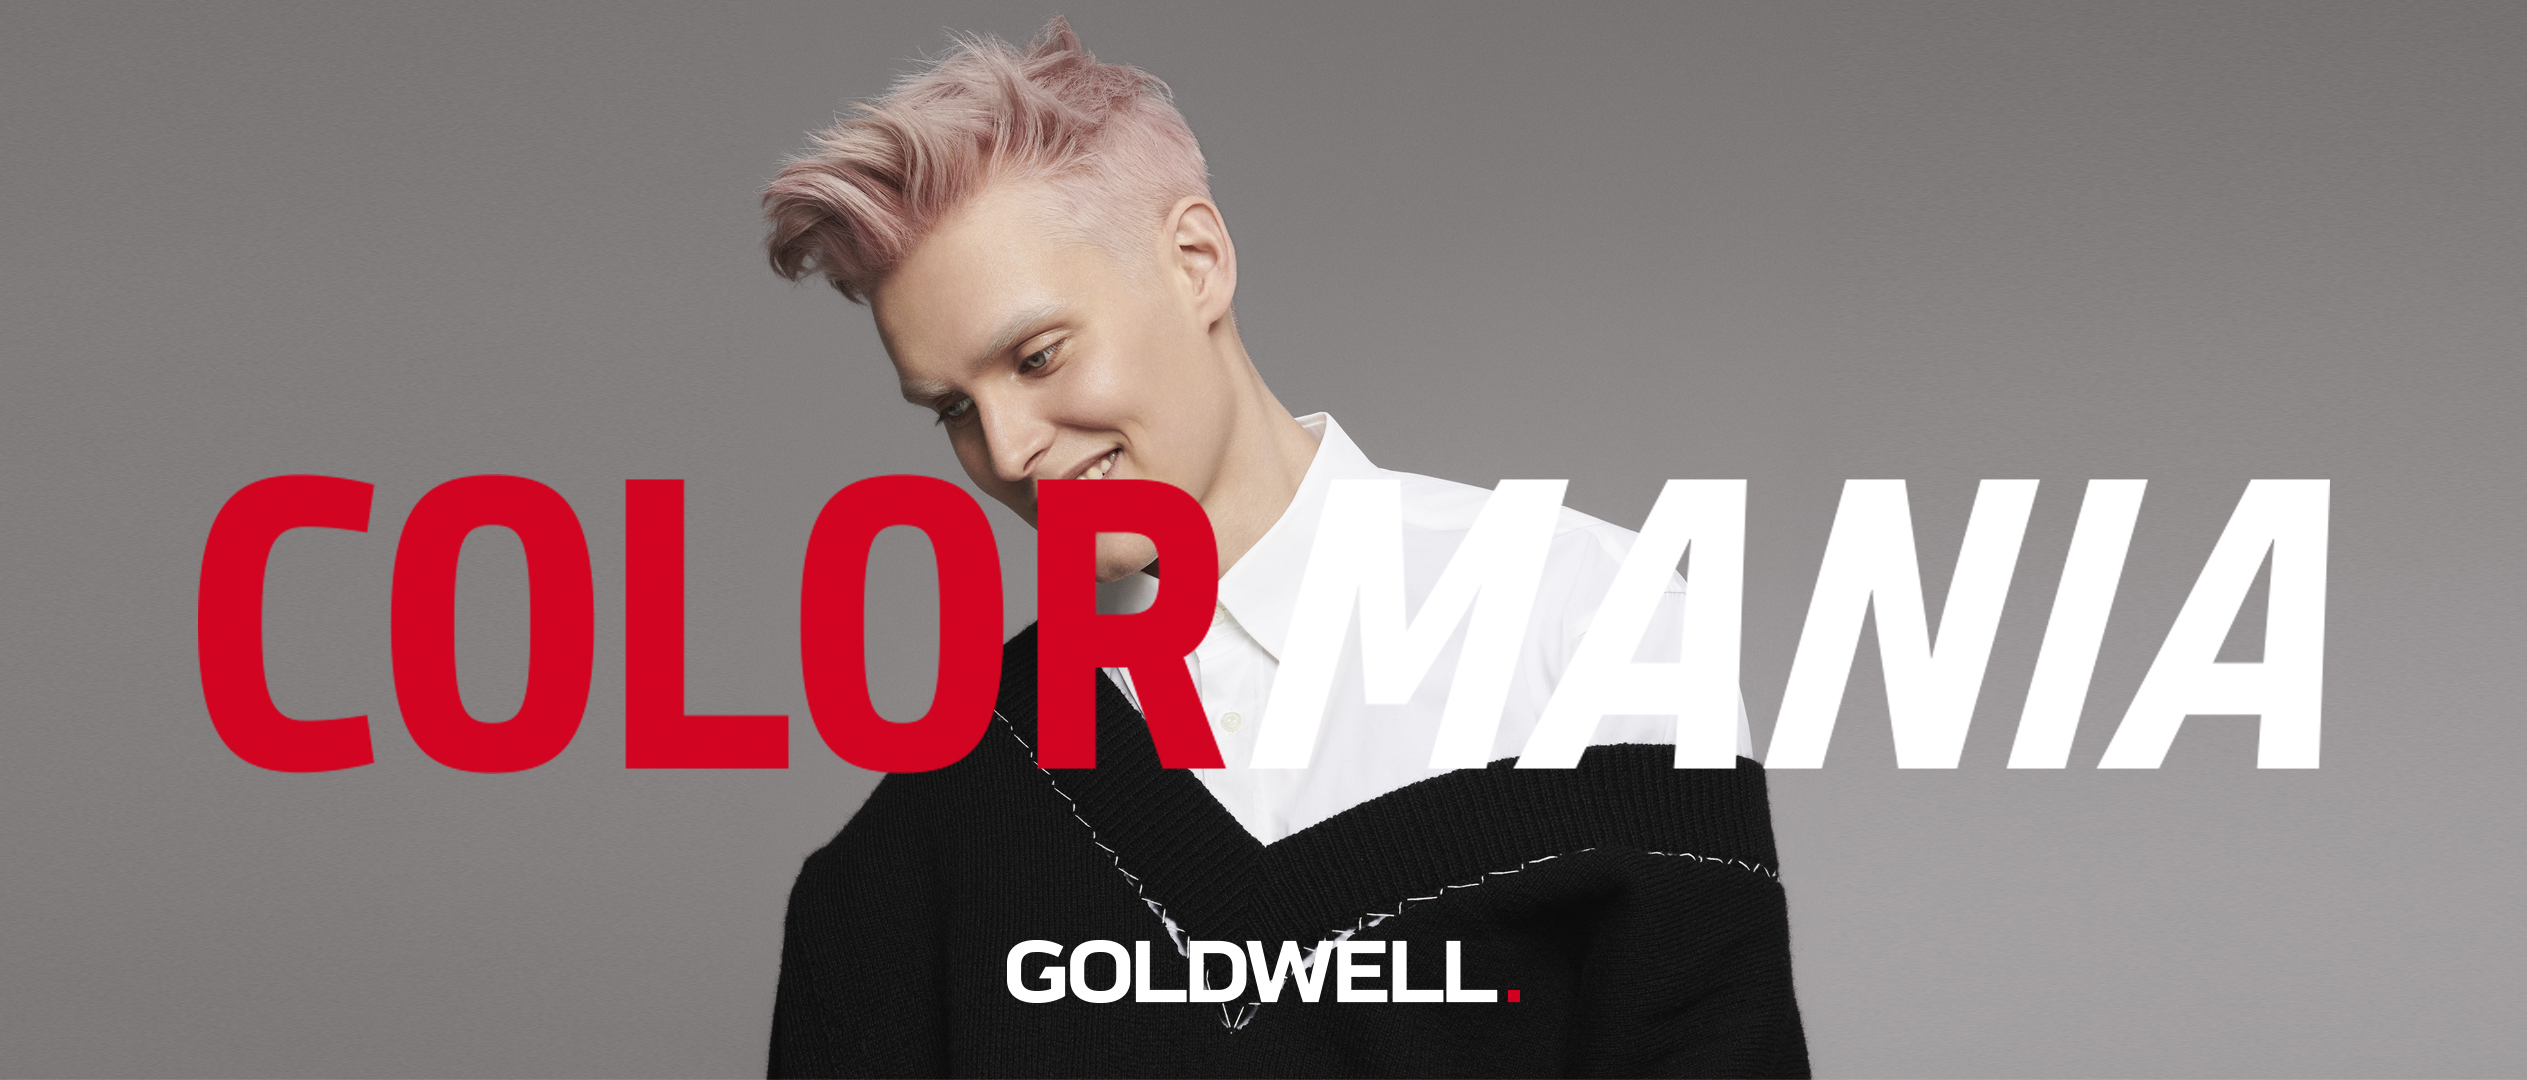 продукты Goldwell: @PurePigments, HD3-окрашивание, Elumen, а также Topchic и Colorance.